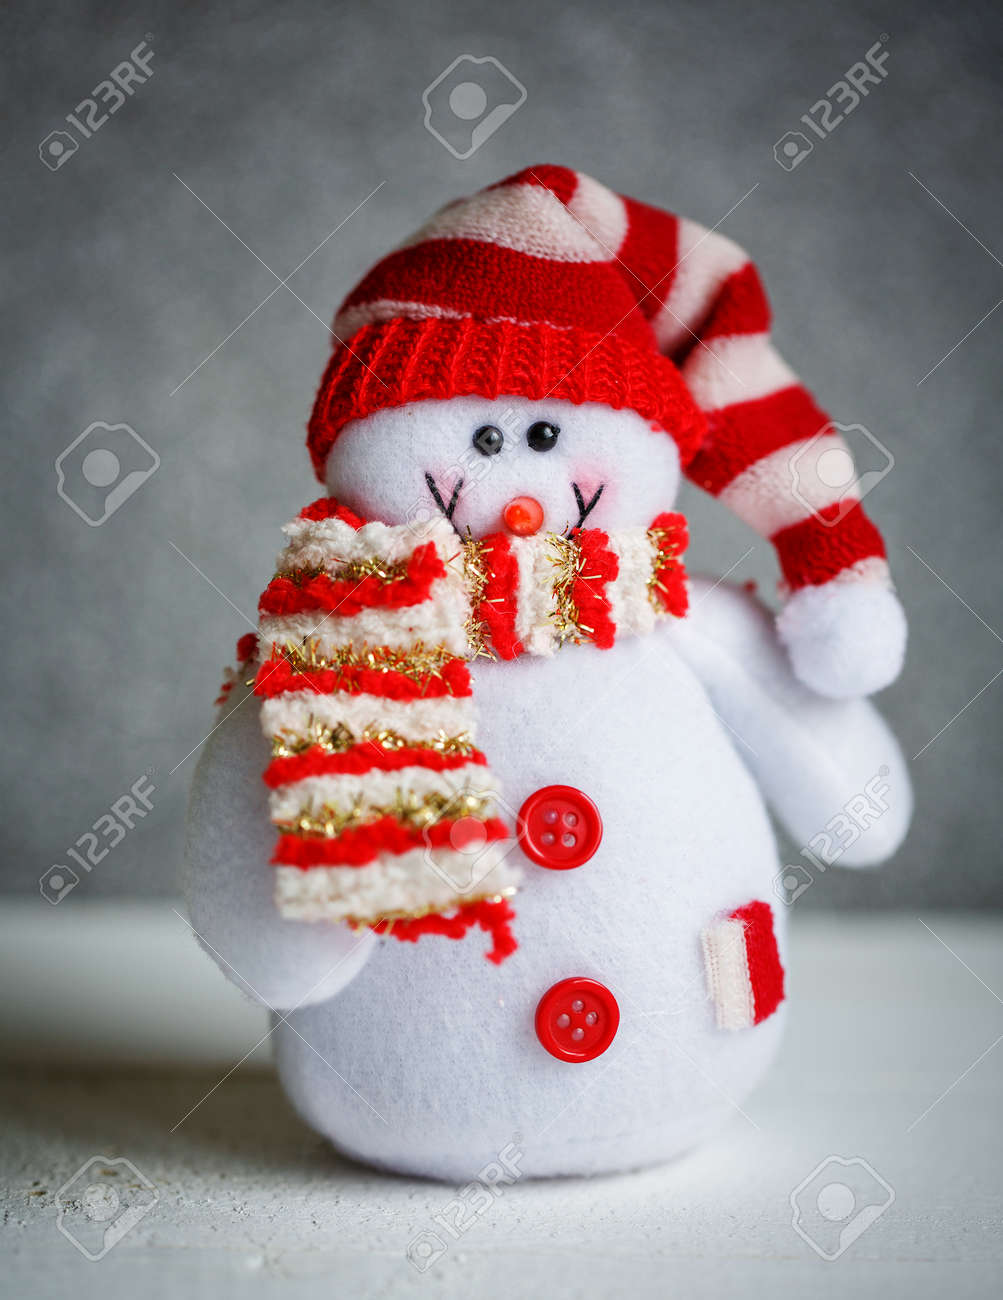 christmas snowman decorations for new year holiday decorations stock photo 94295408